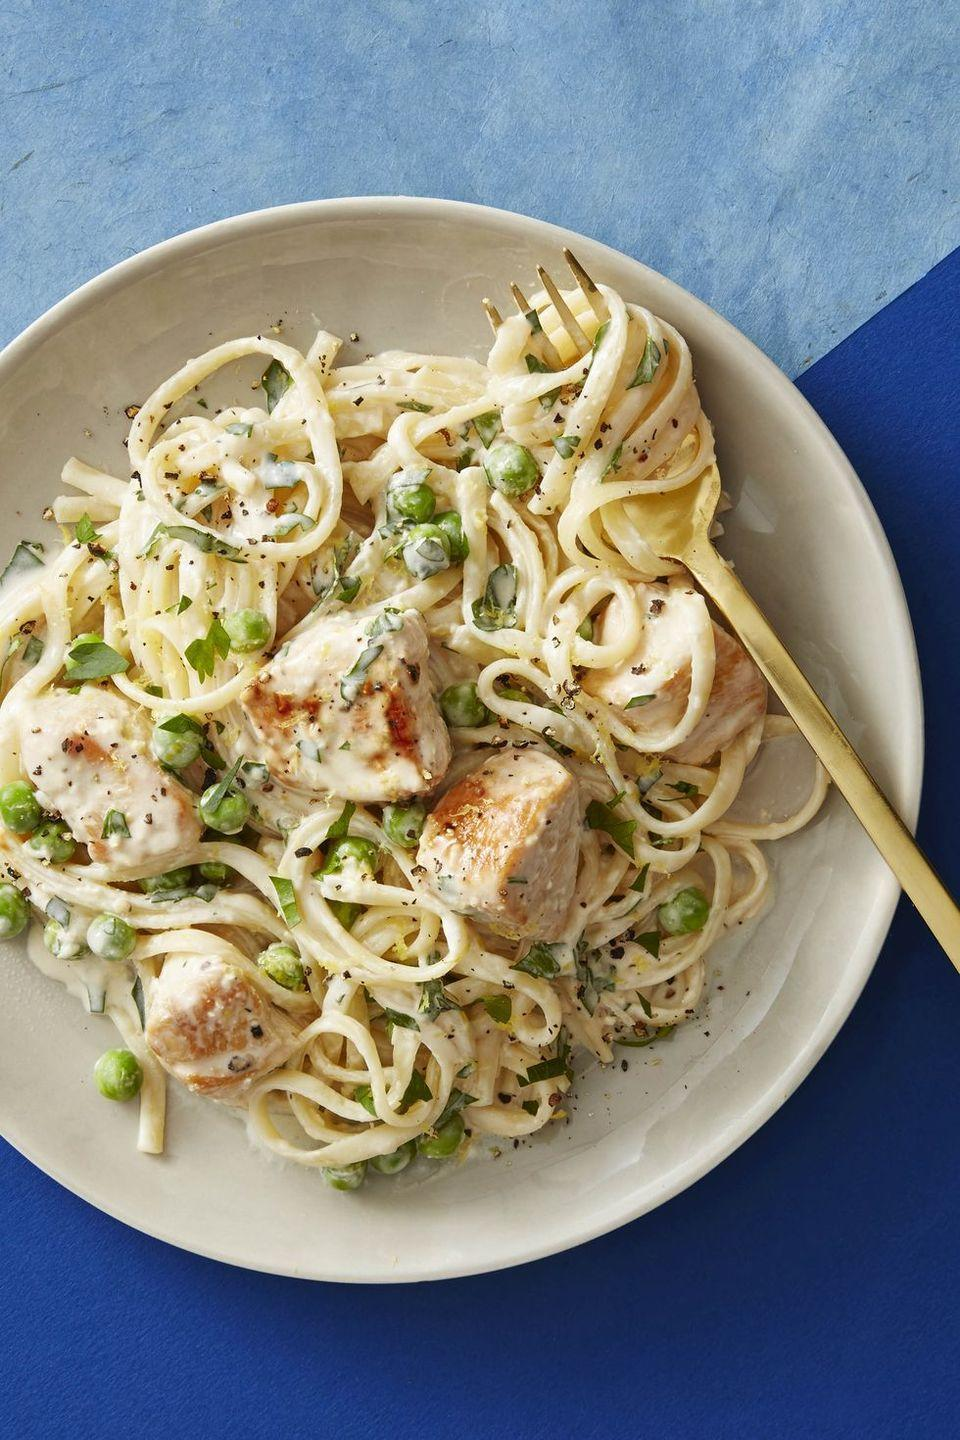 """<p>Cream cheese and lemon turn average chicken and pasta into a luxurious kid-friendly dinner.</p><p><em><a href=""""https://www.goodhousekeeping.com/food-recipes/easy/a47534/creamy-lemon-chicken-pasta-recipe/"""" rel=""""nofollow noopener"""" target=""""_blank"""" data-ylk=""""slk:Get the recipe for Creamy Lemon Chicken Pasta »"""" class=""""link rapid-noclick-resp"""">Get the recipe for Creamy Lemon Chicken Pasta »</a></em></p>"""